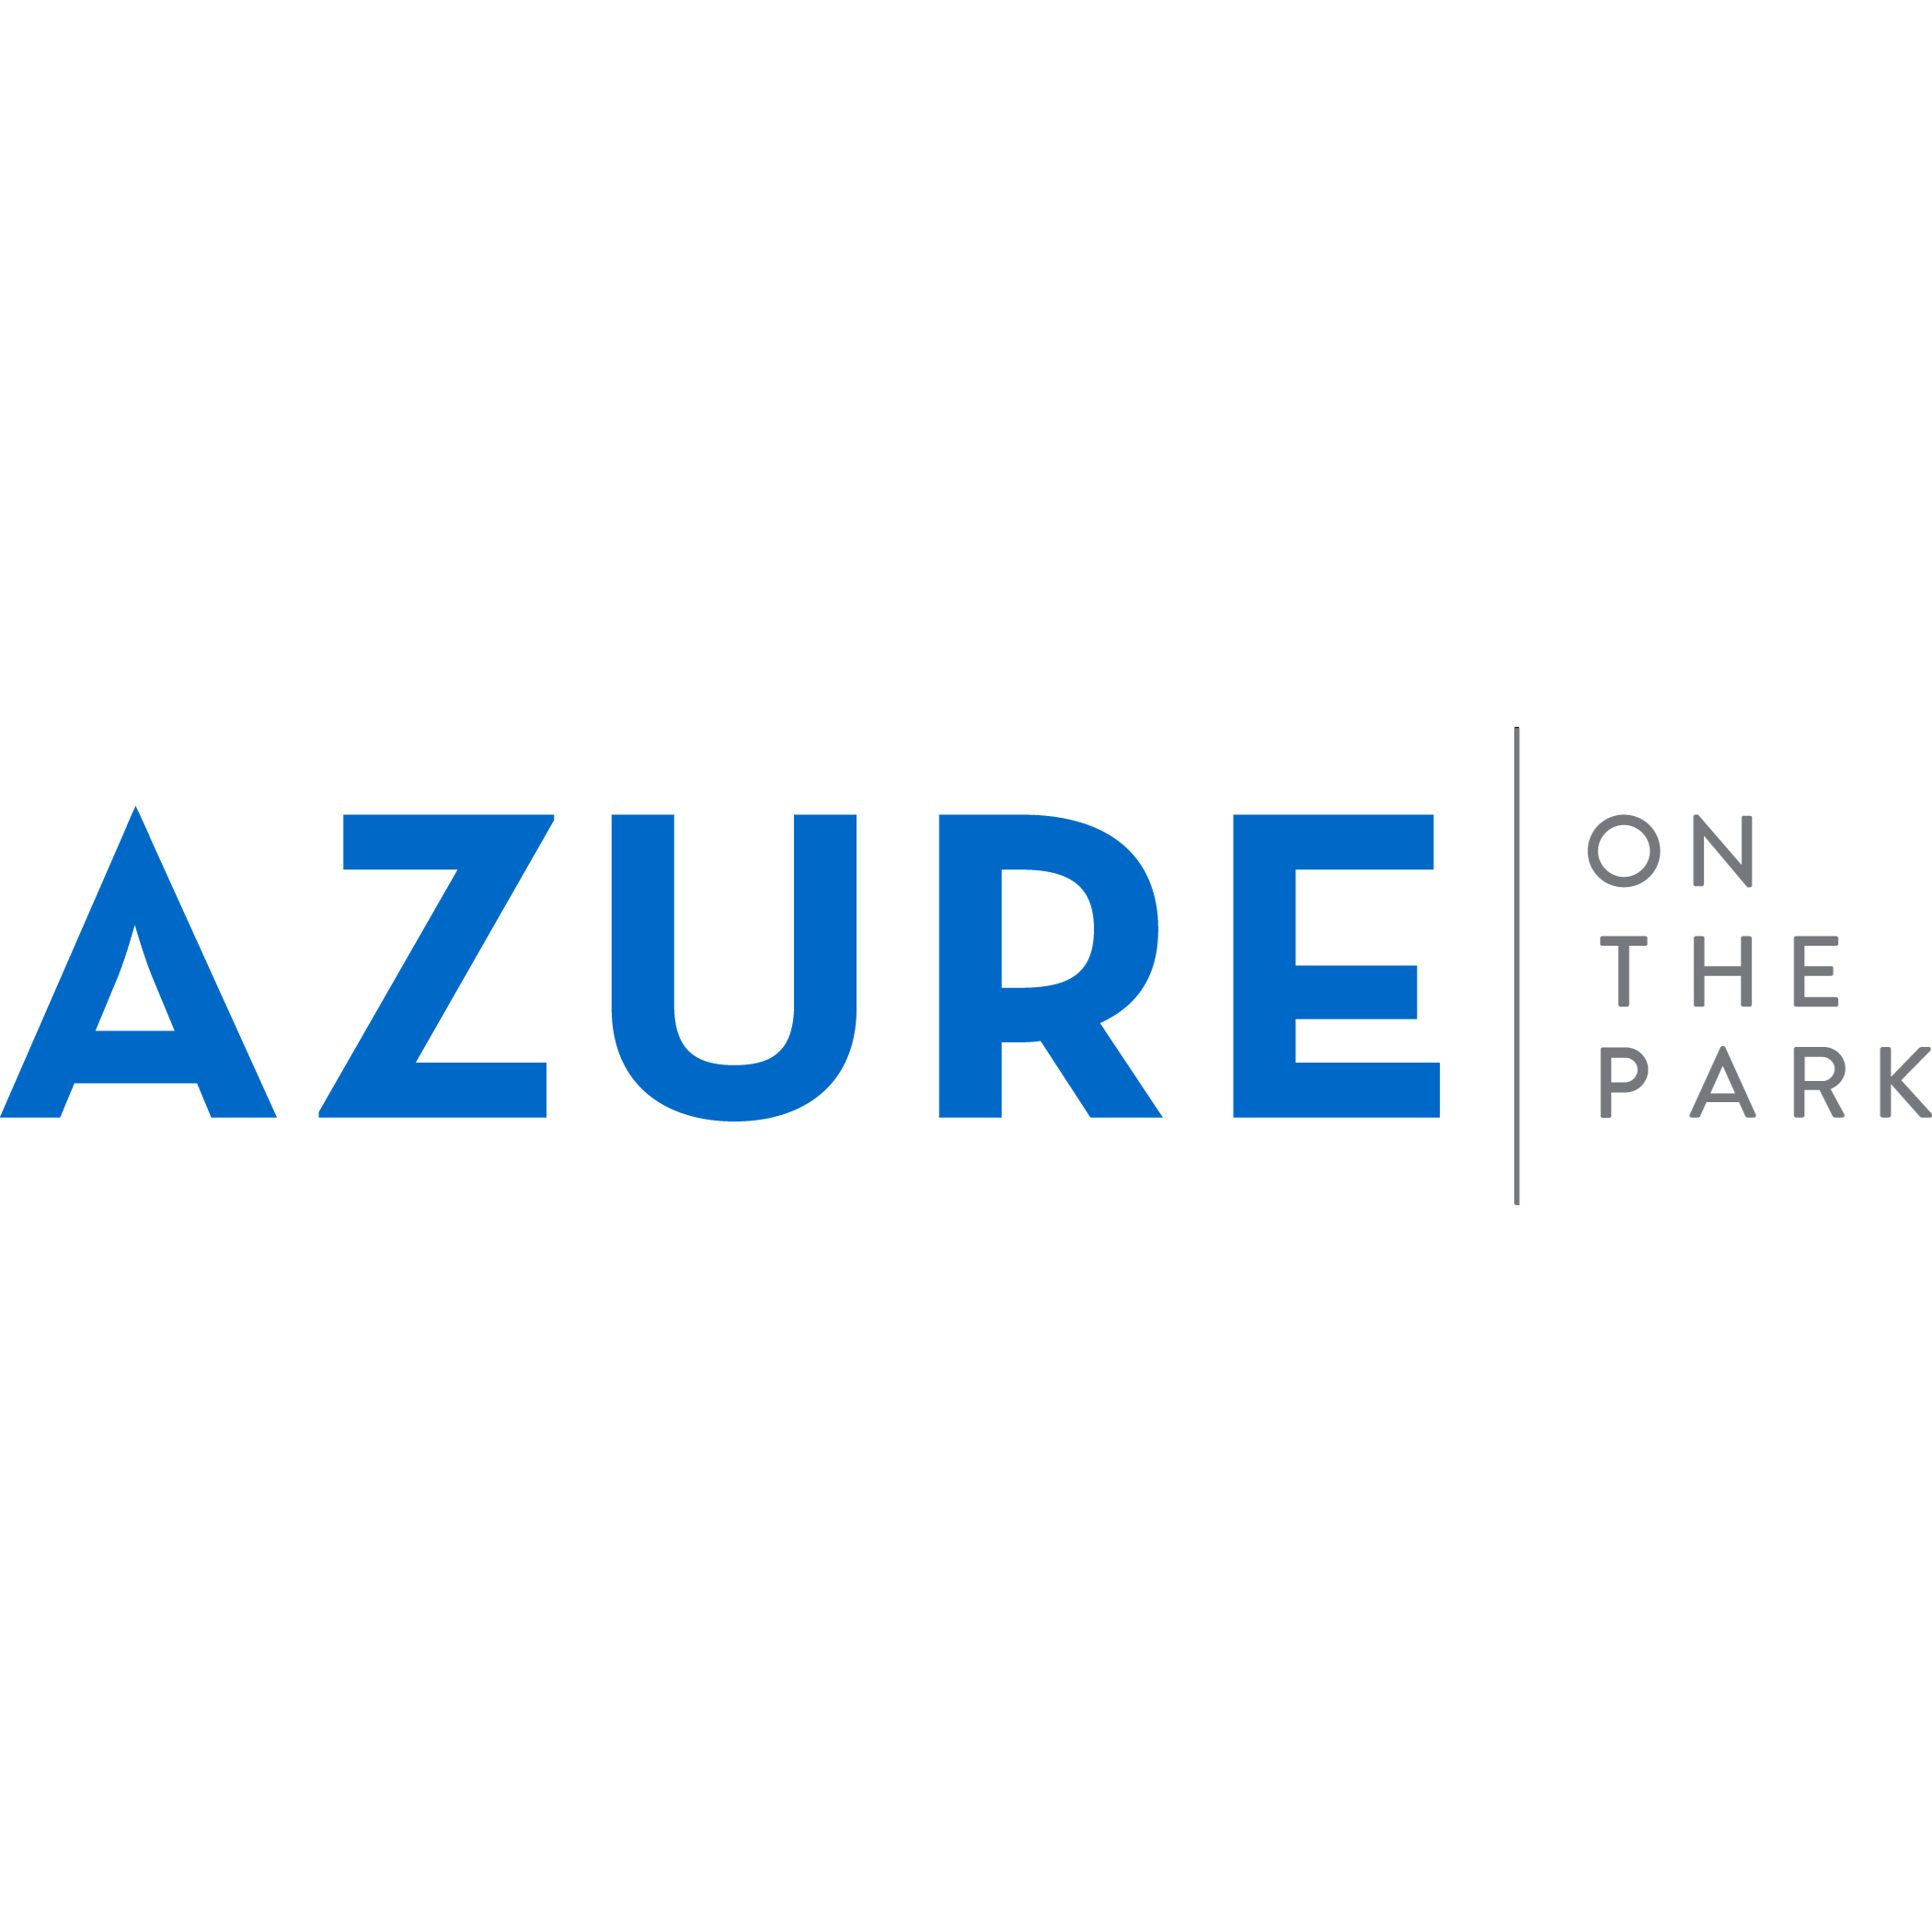 Azure on the Park